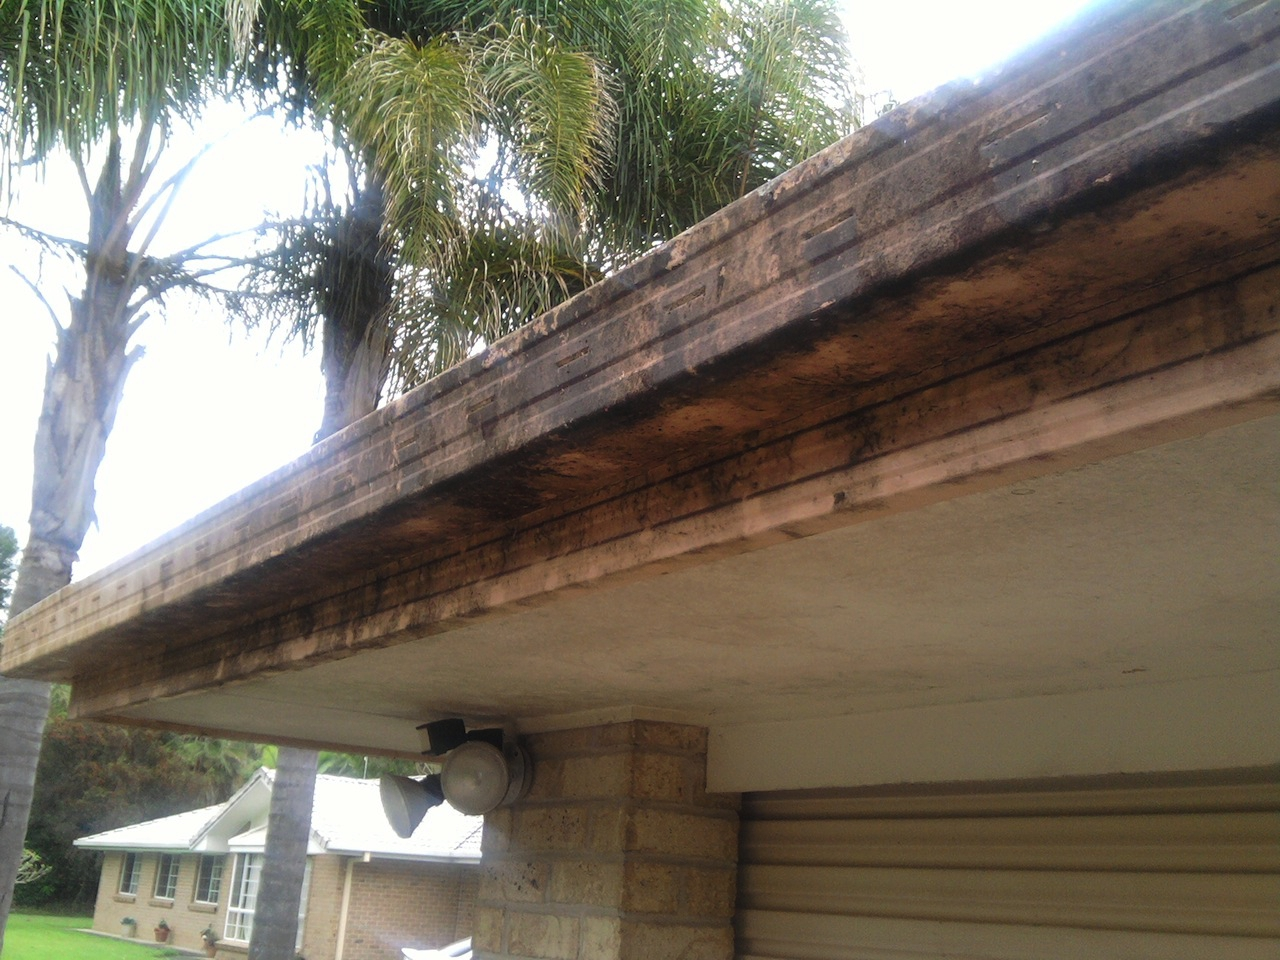 Gutters before pressure cleaning